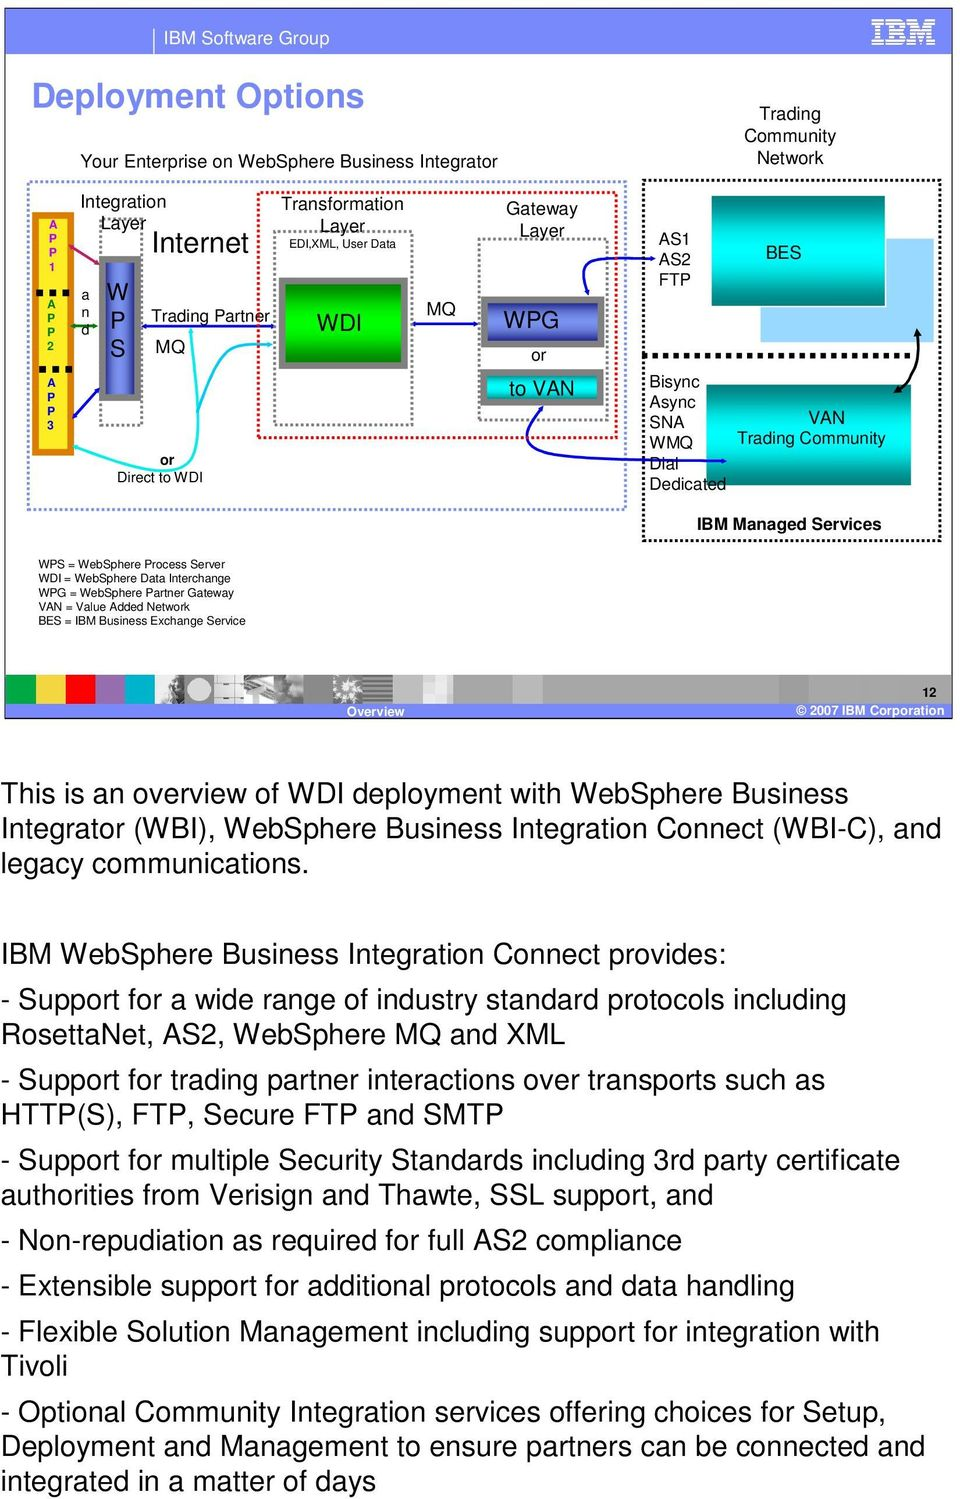 Server WDI = WebSphere Data Interchange WPG = WebSphere Partner Gateway VAN = Value Added Network BES = IBM Business Exchange Service 12 This is an overview of WDI deployment with WebSphere Business